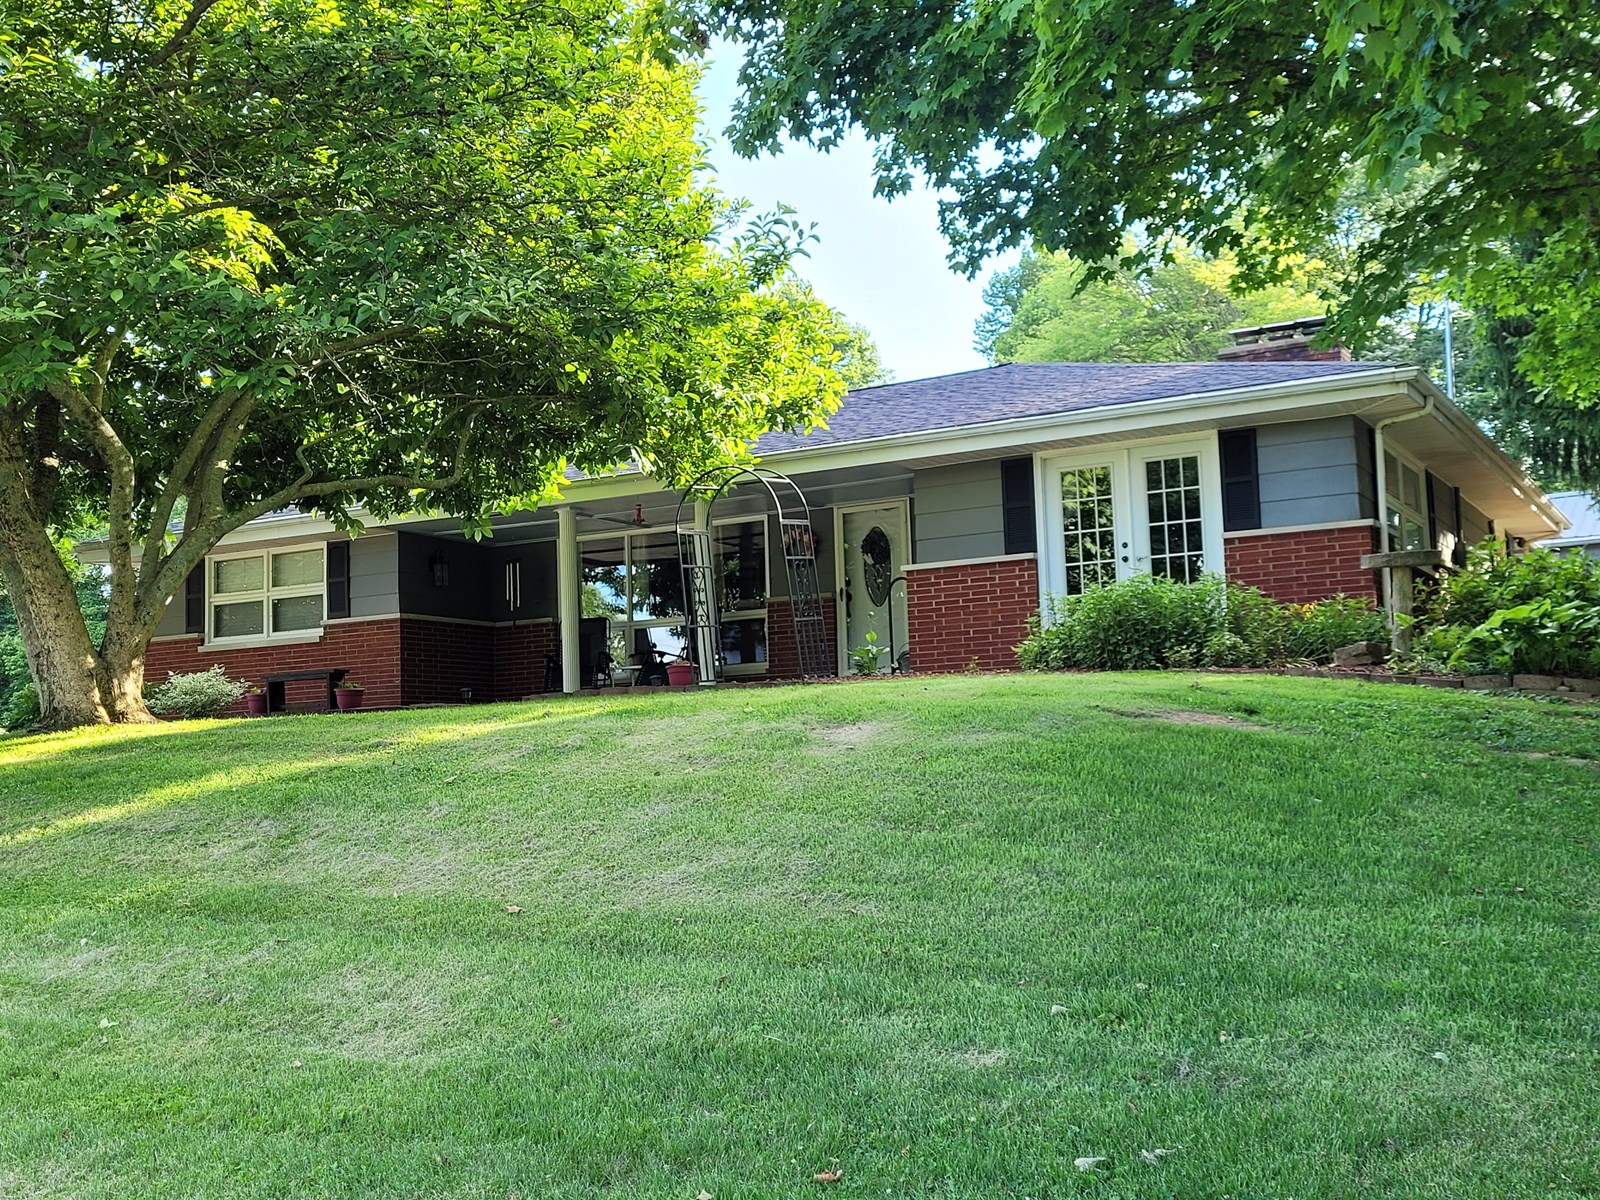 Greene County Indiana House for Sale | Country Home